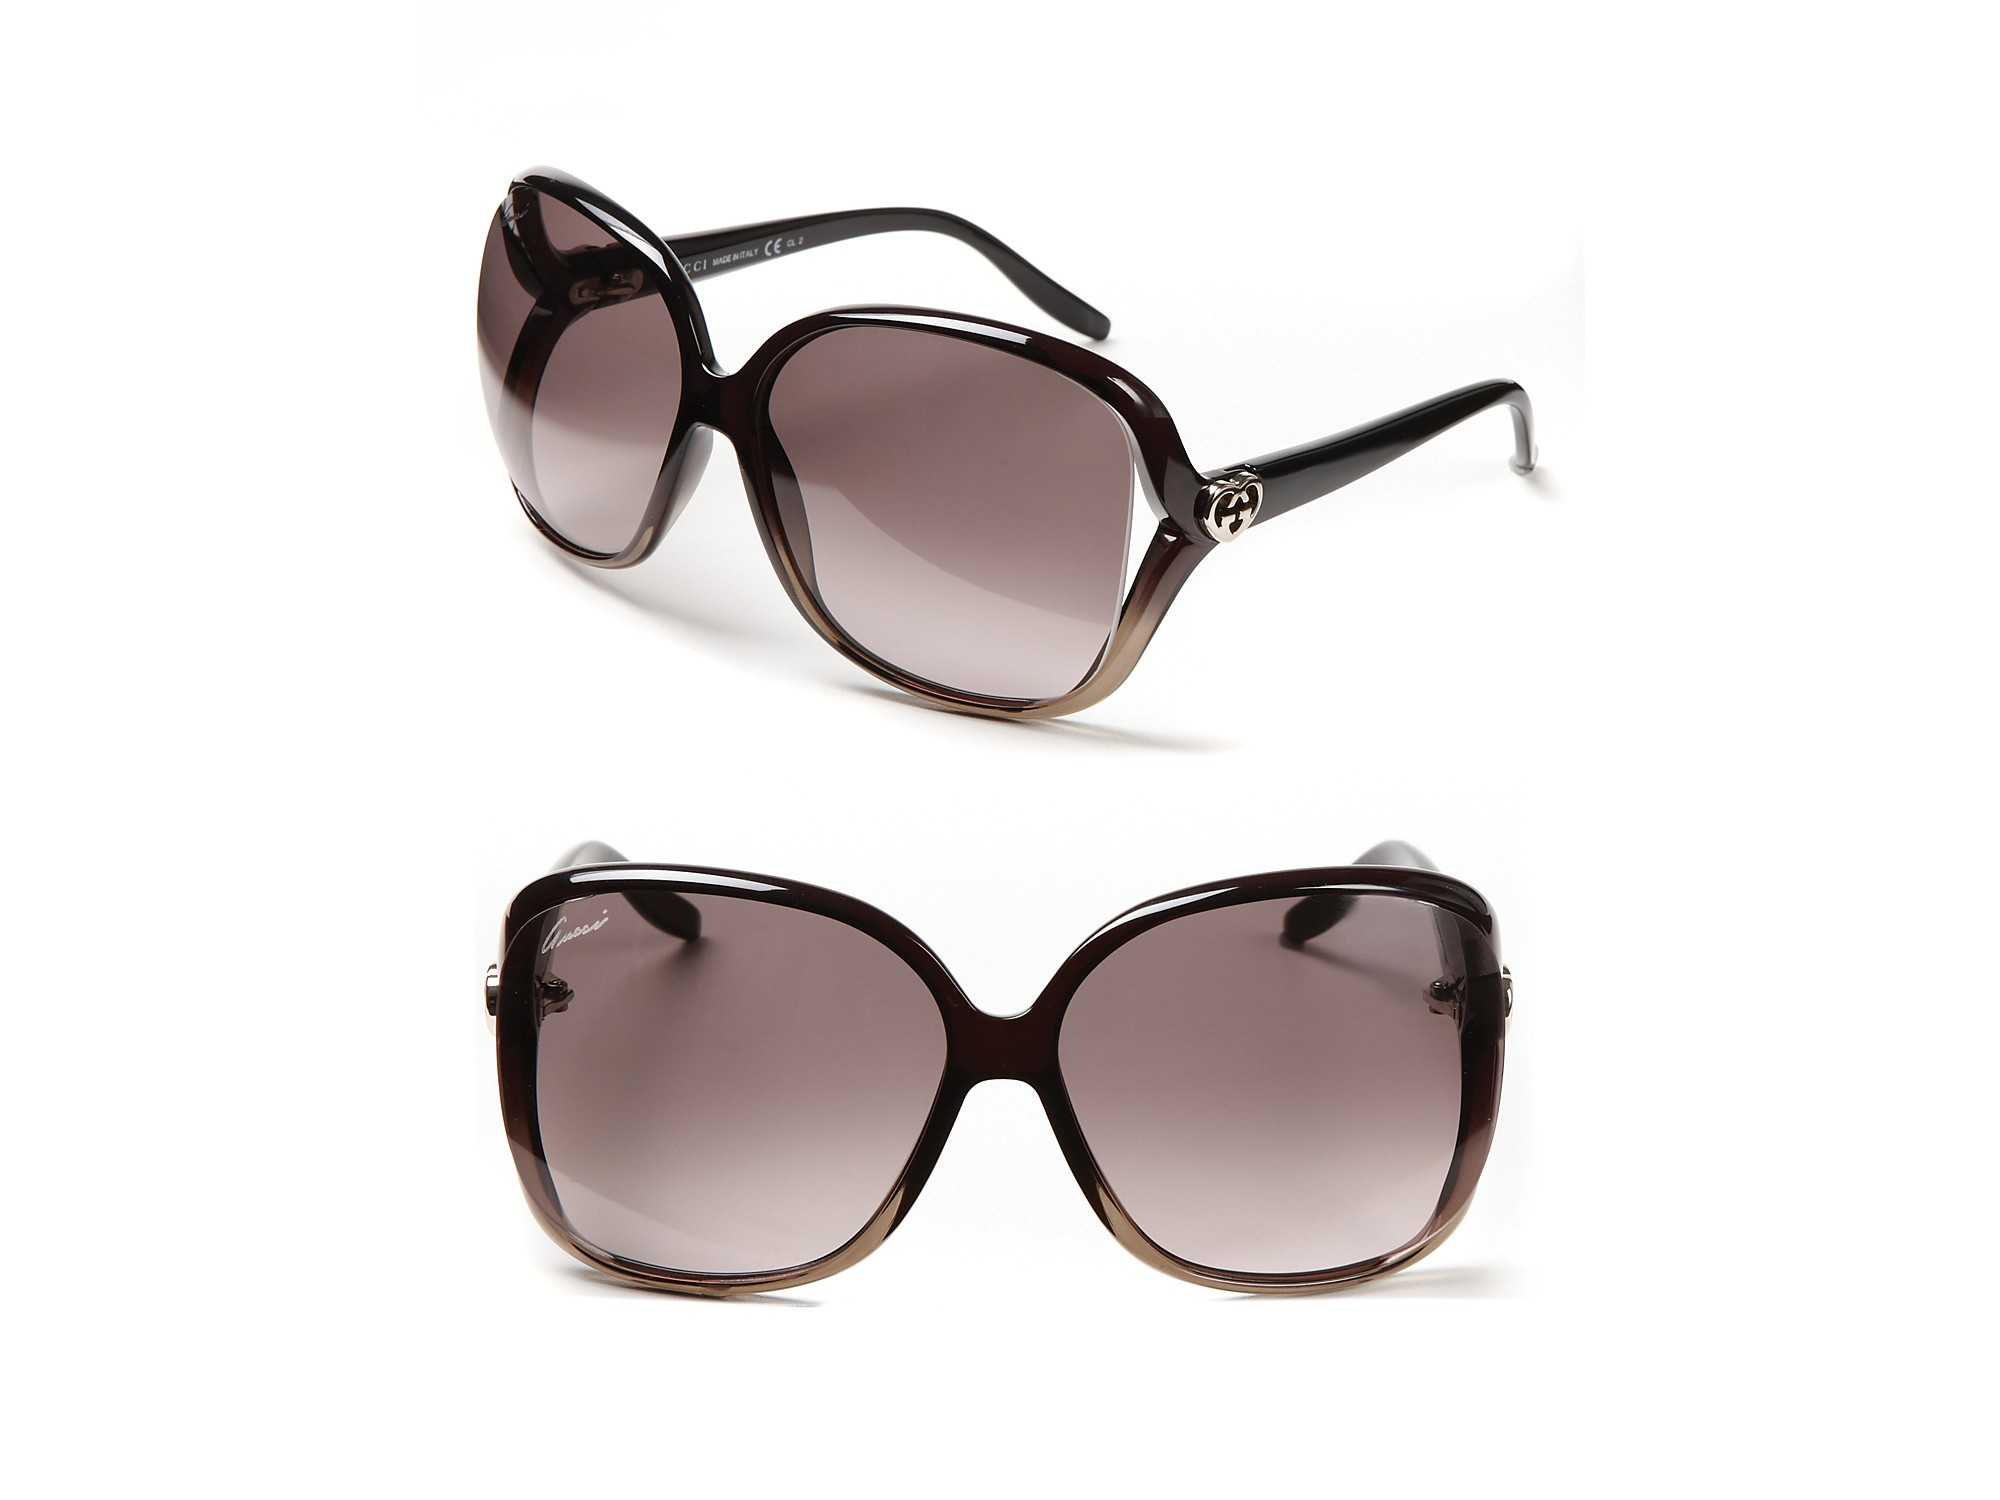 79ed3751f6a Lyst - Gucci Oversize Square Frame Sunglasses with Open Sides in Black